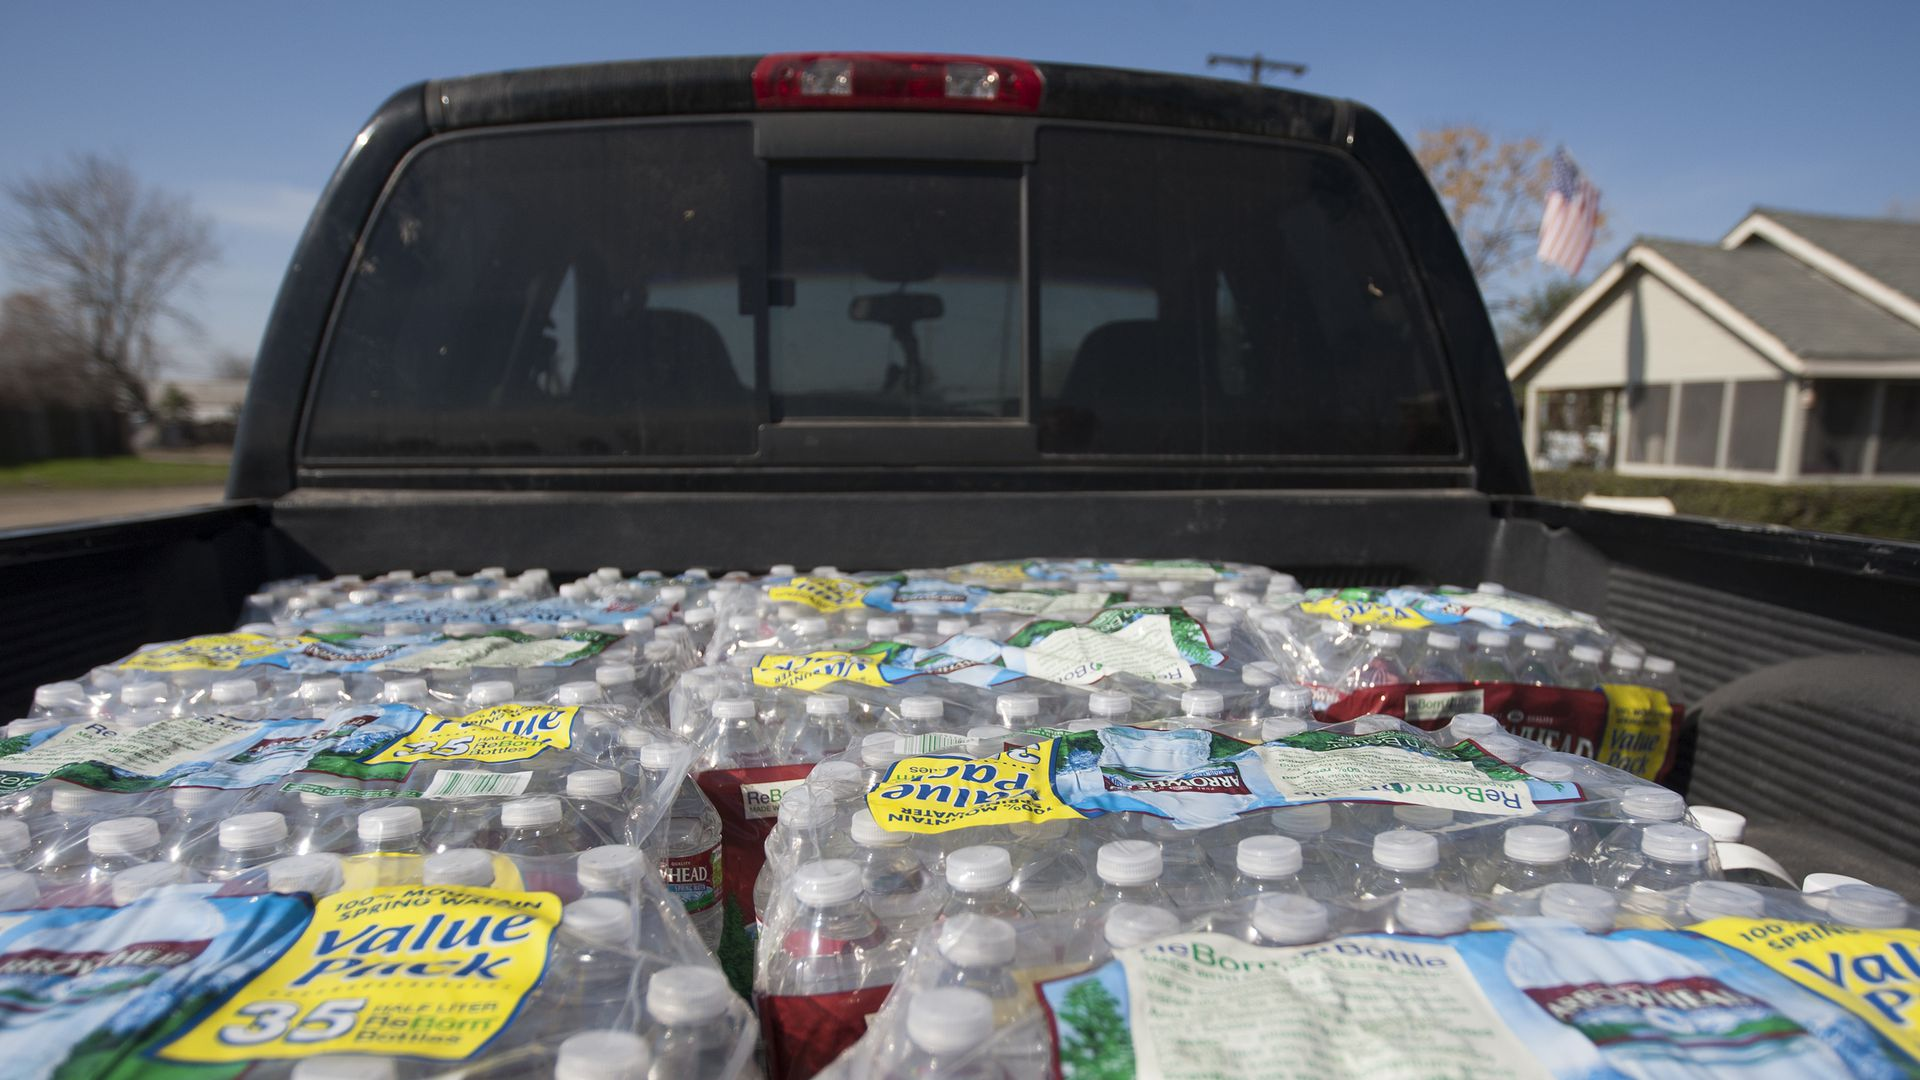 Cases of bottled water in a truck bed.